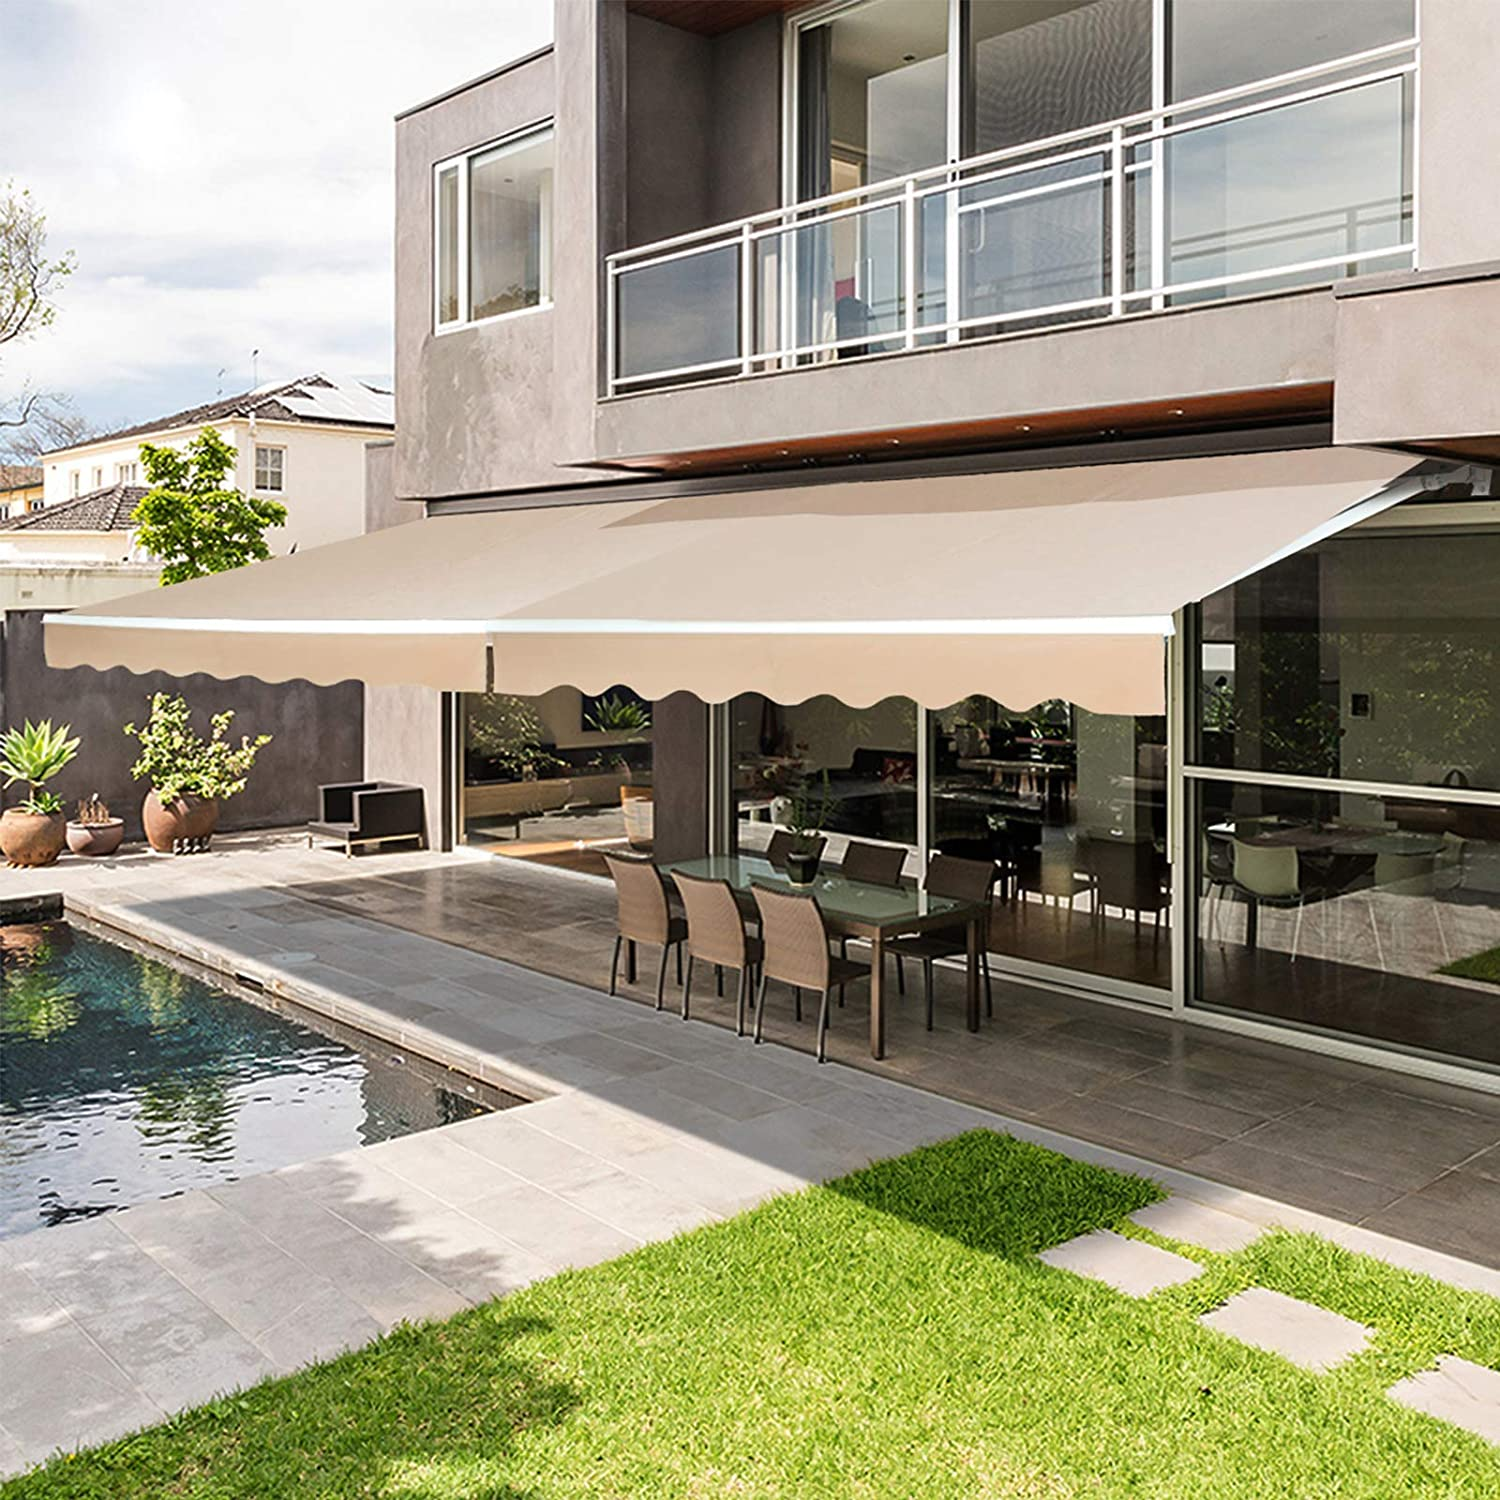 consumer reports retractable awnings